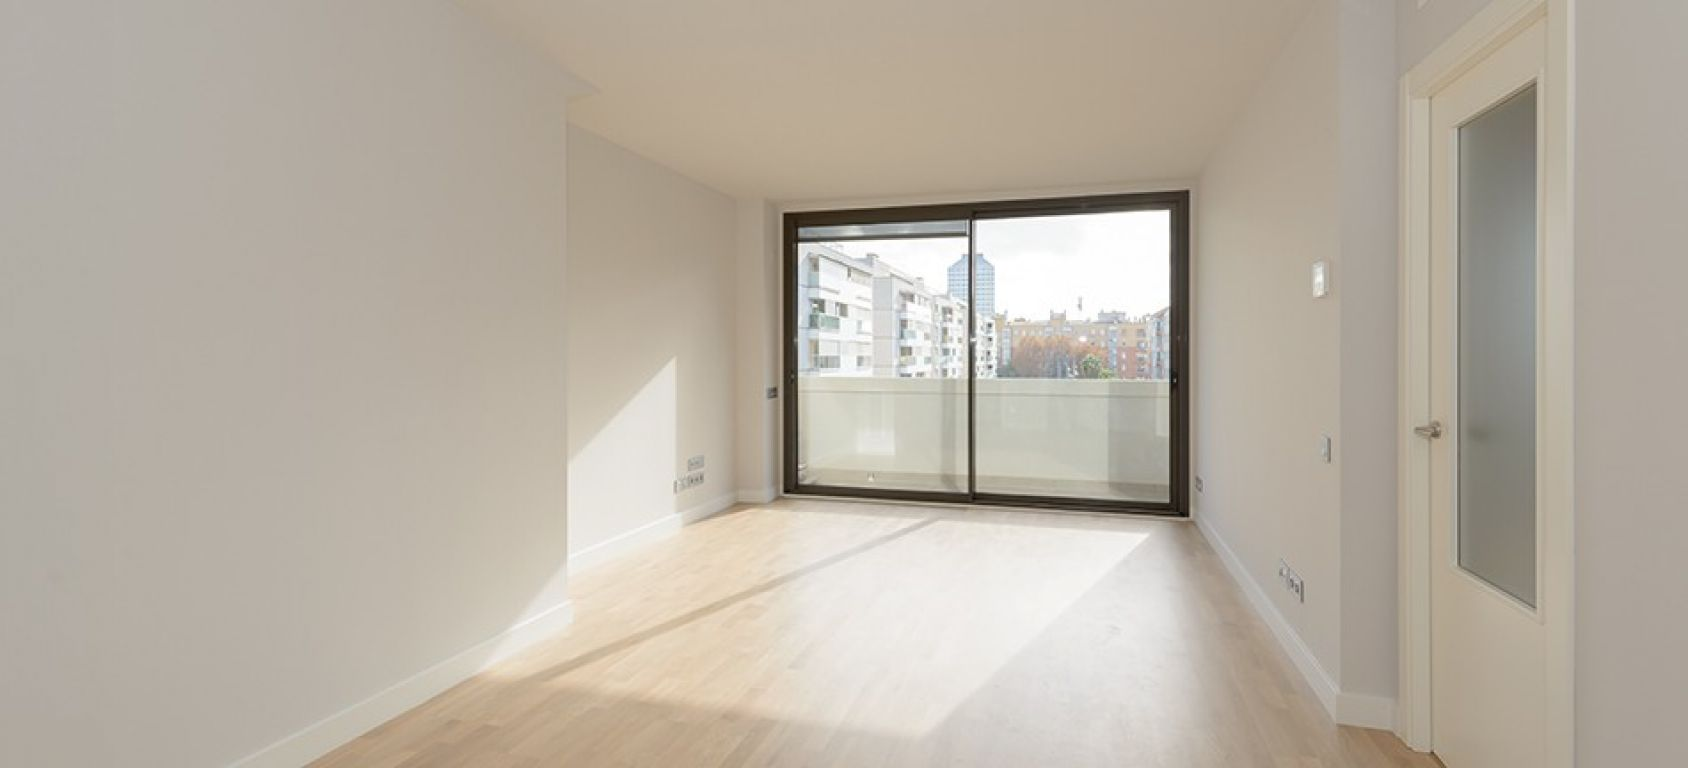 New home - Flat in, 105 m², close to bus and metro, new